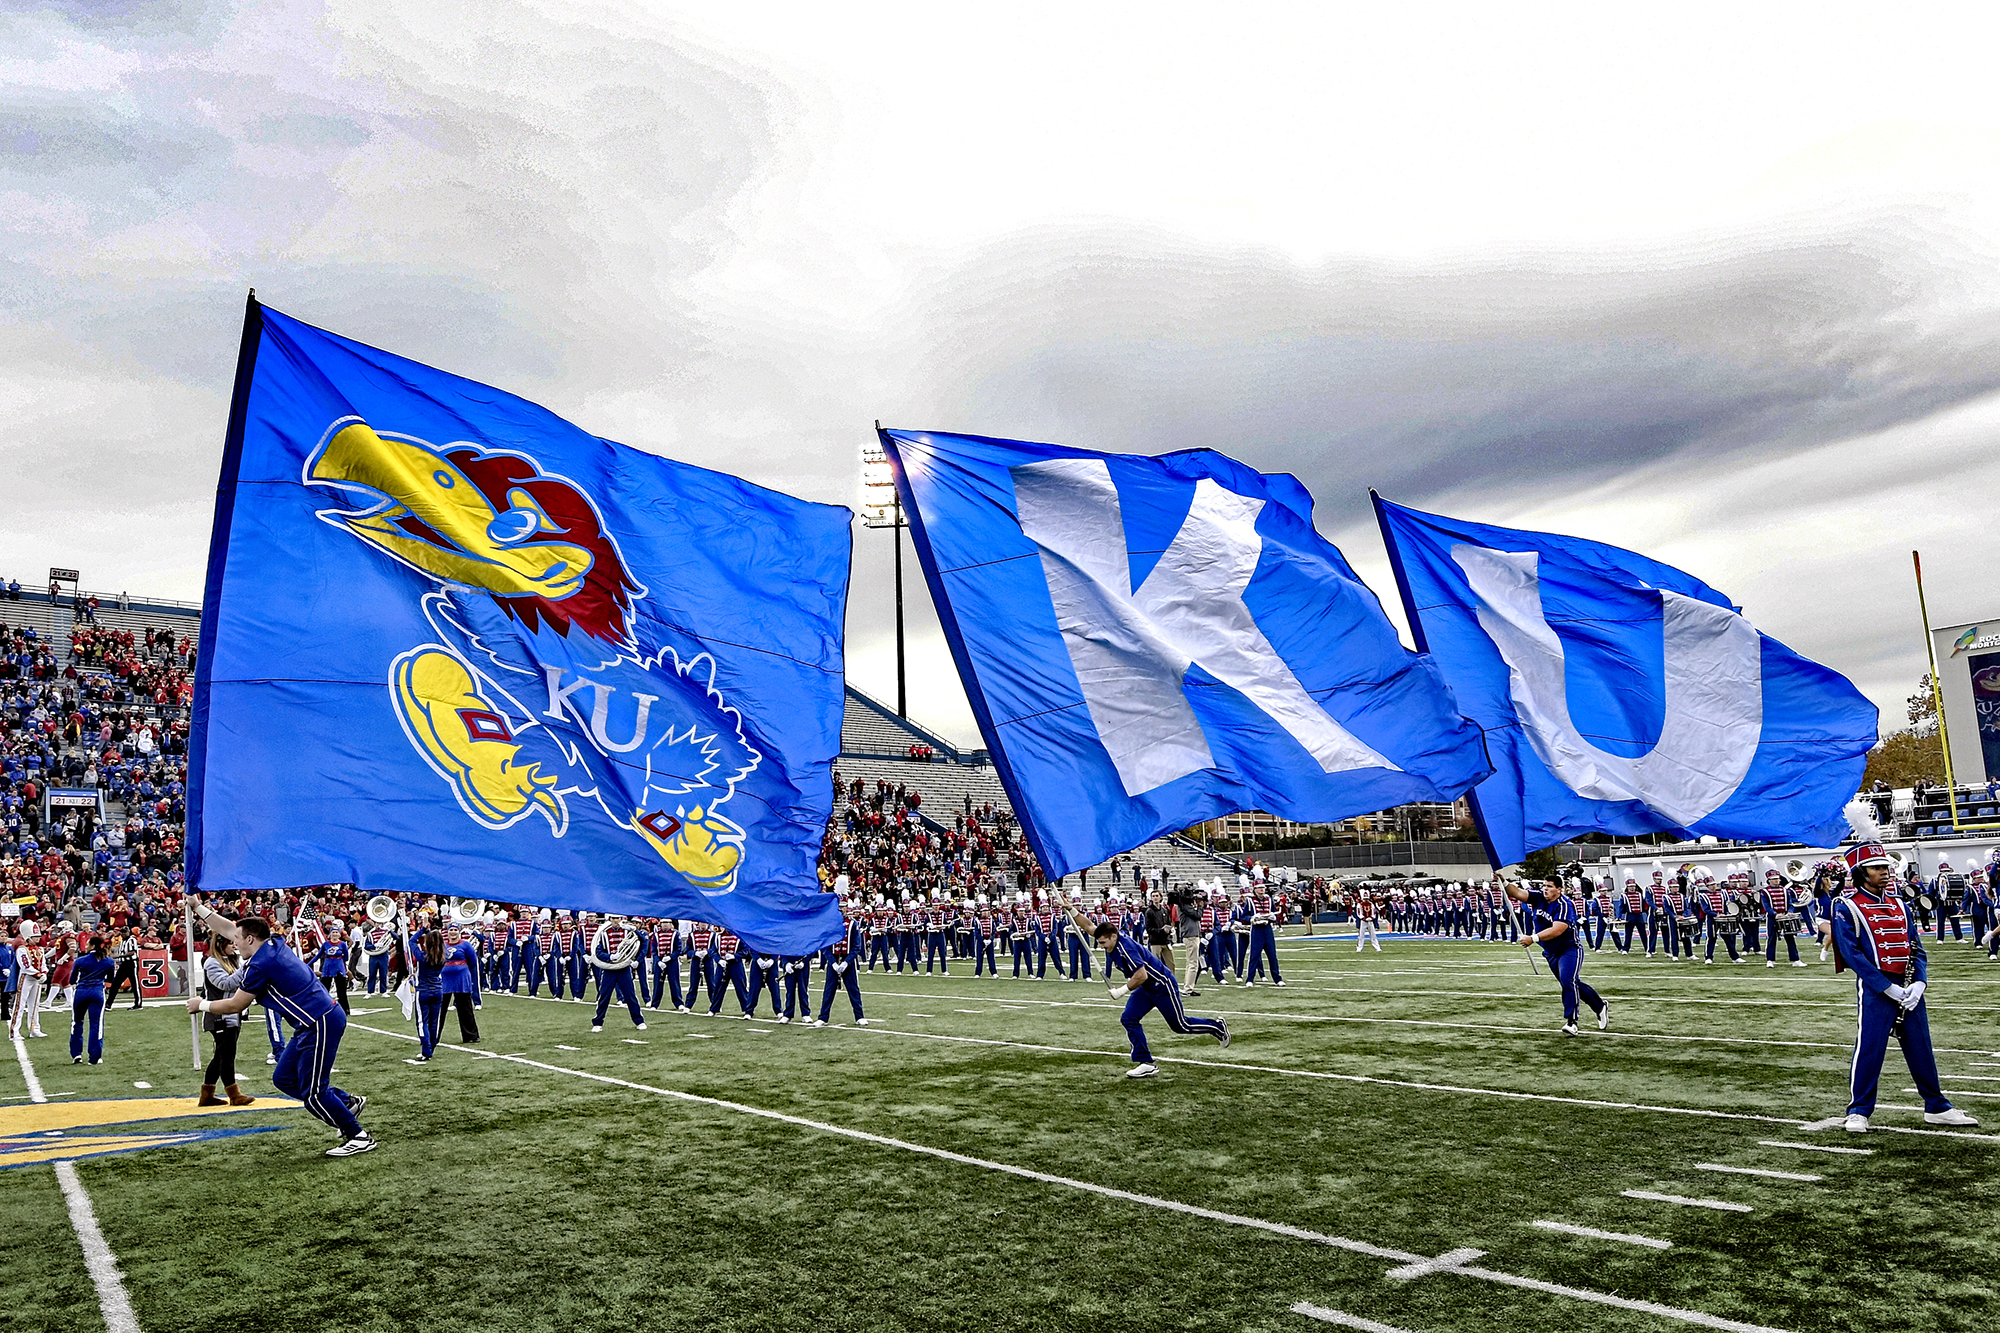 FLAG BEARERS – KU cheerleaders Zack Brenner, Max Simonian and Caleb Locke used all their speed and strength to lead the KU football team onto the field while bearing three large flags inside David Booth Kansas Memorial Stadium where the Jayhawks played Iowa State on Saturday, November 3.